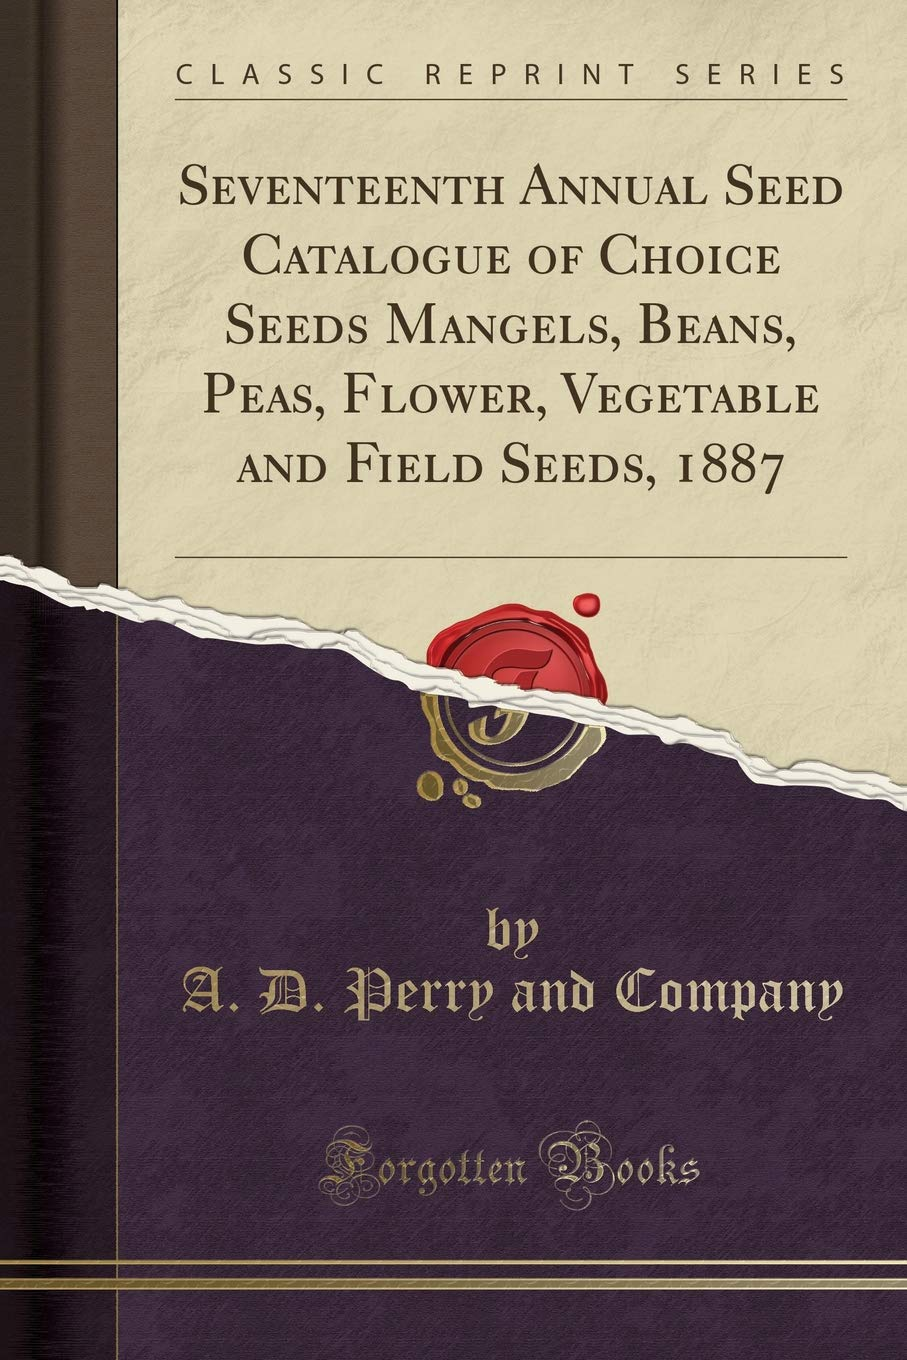 Seventeenth Annual Seed Catalogue of Choice Seeds Mangels, Beans, Peas, Flower, Vegetable and Field Seeds, 1887 (Classic Reprint) pdf epub